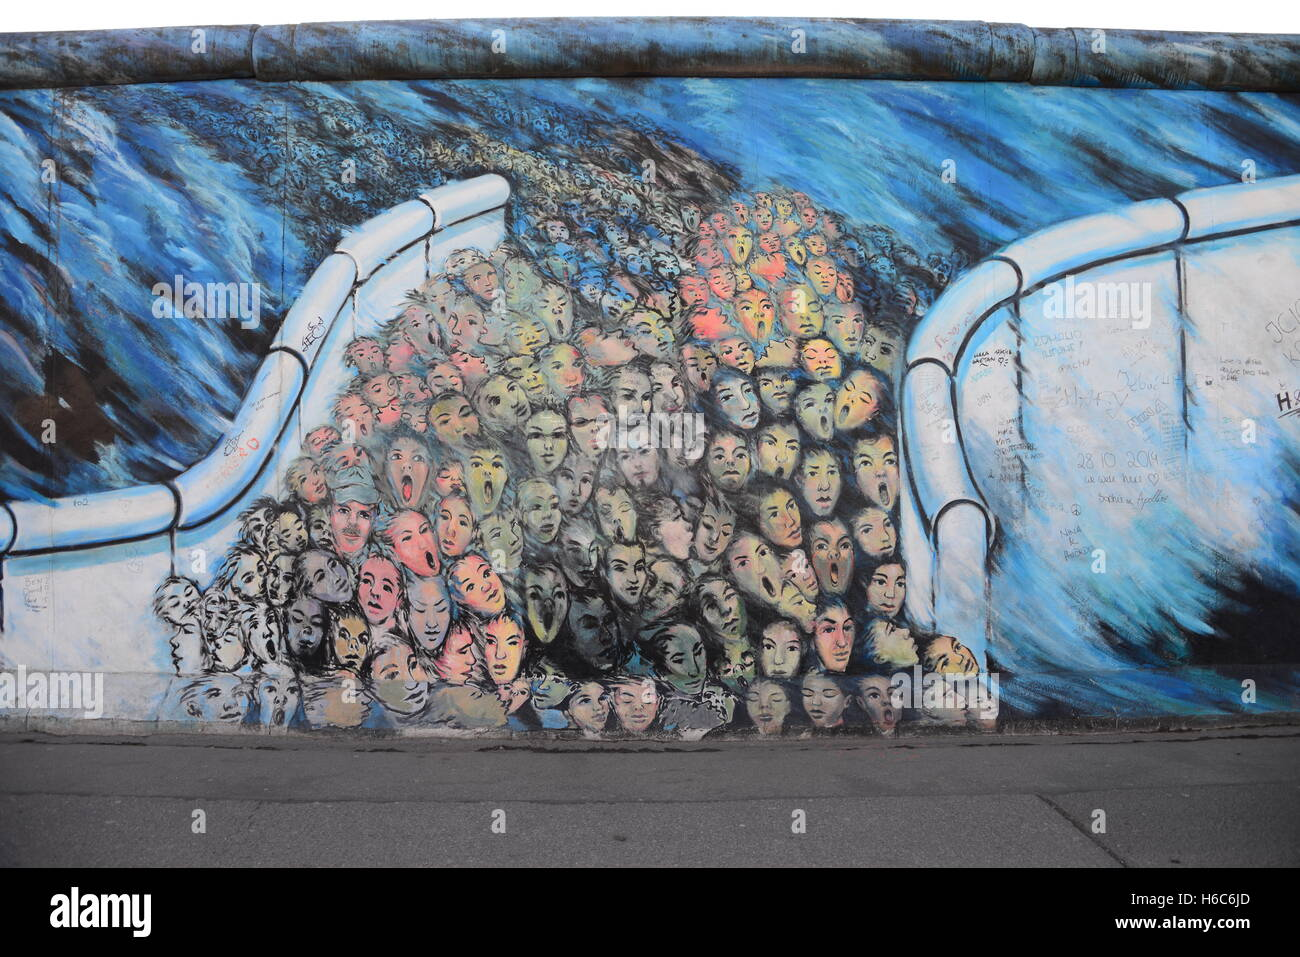 Part of the Berlin wall, bearing political and other graffiti and illustrations - Stock Image